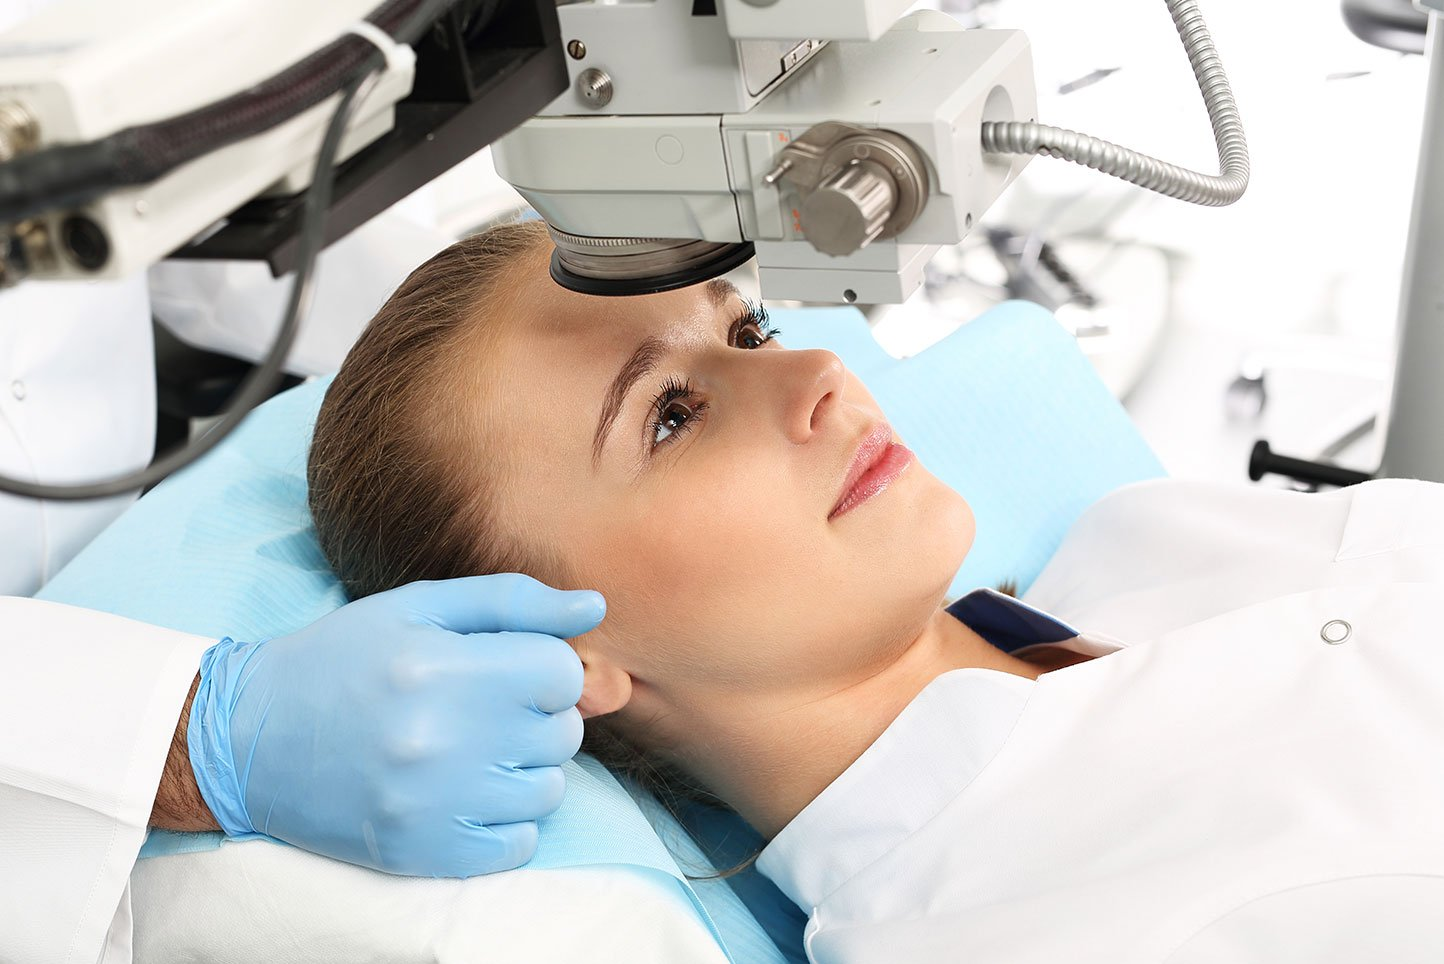 A patient in the operating room during ophthalmic surgery